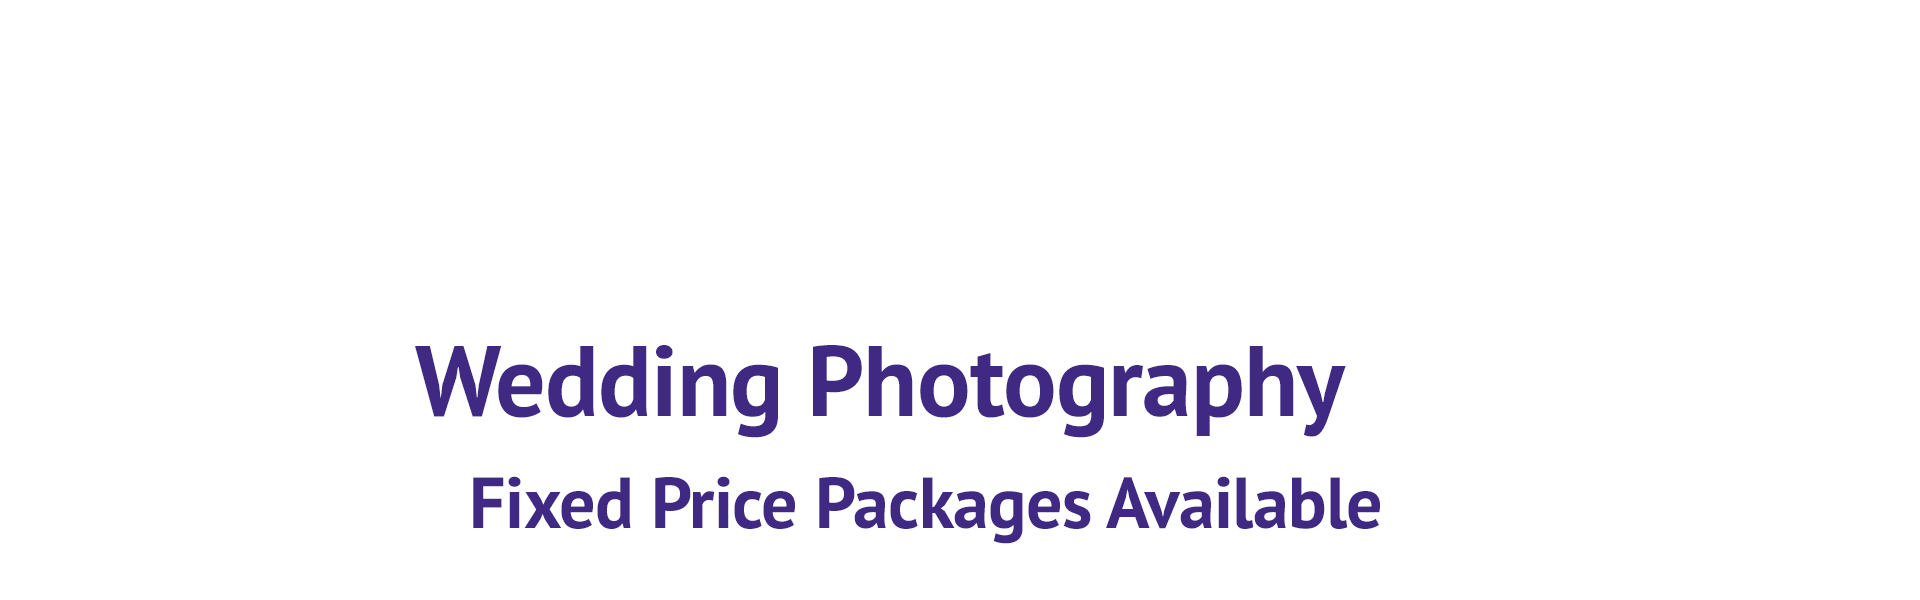 Wedding Photography Fixed Price Packages Available